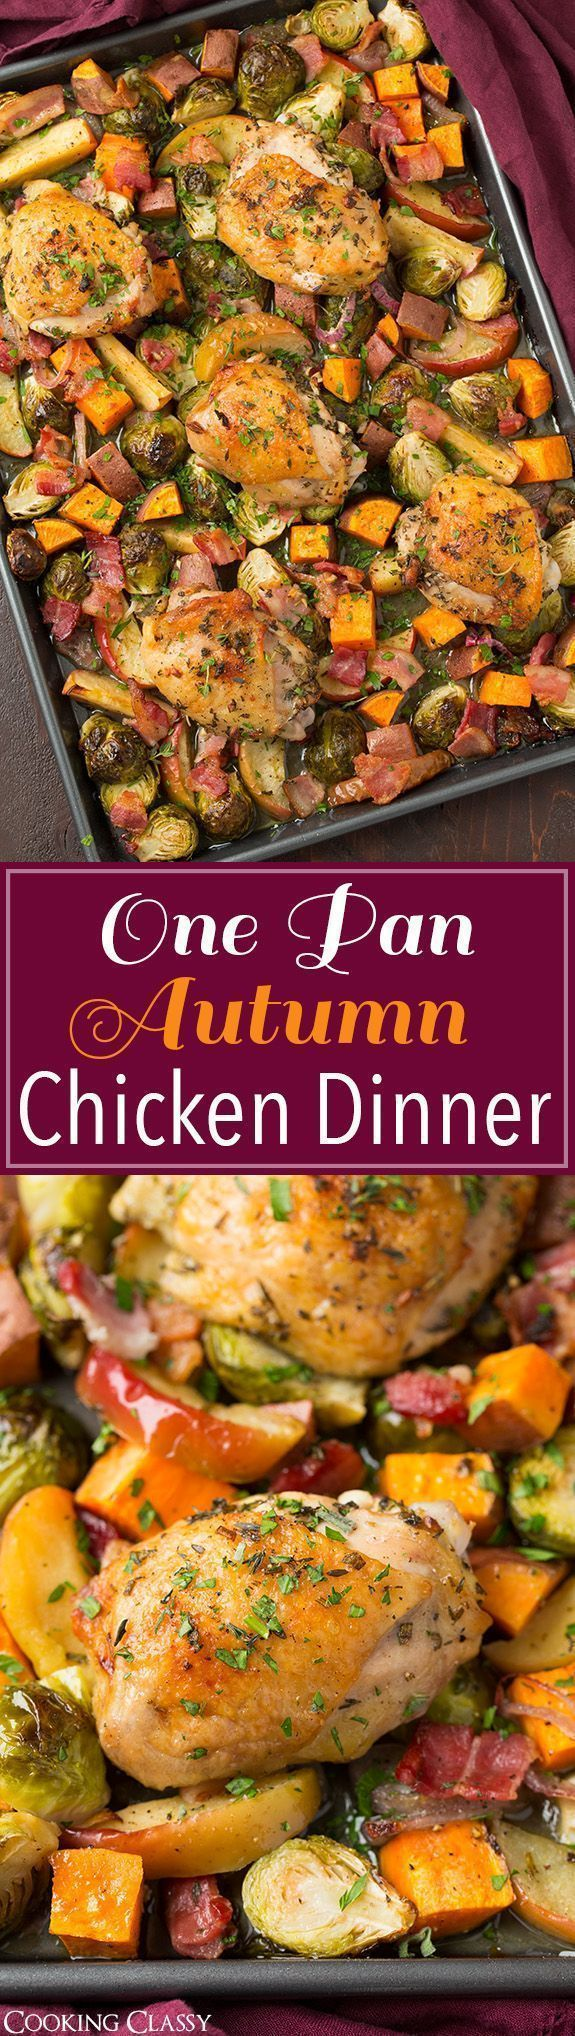 One Pan Autumn Chicken Dinner - easy to make and clean up is a breeze! Brussels sprouts, apples, sweet potatoes, bacon, shallots and herb chicken. Delicious! #healthy #fall #recipe (Fall Bake Savory)